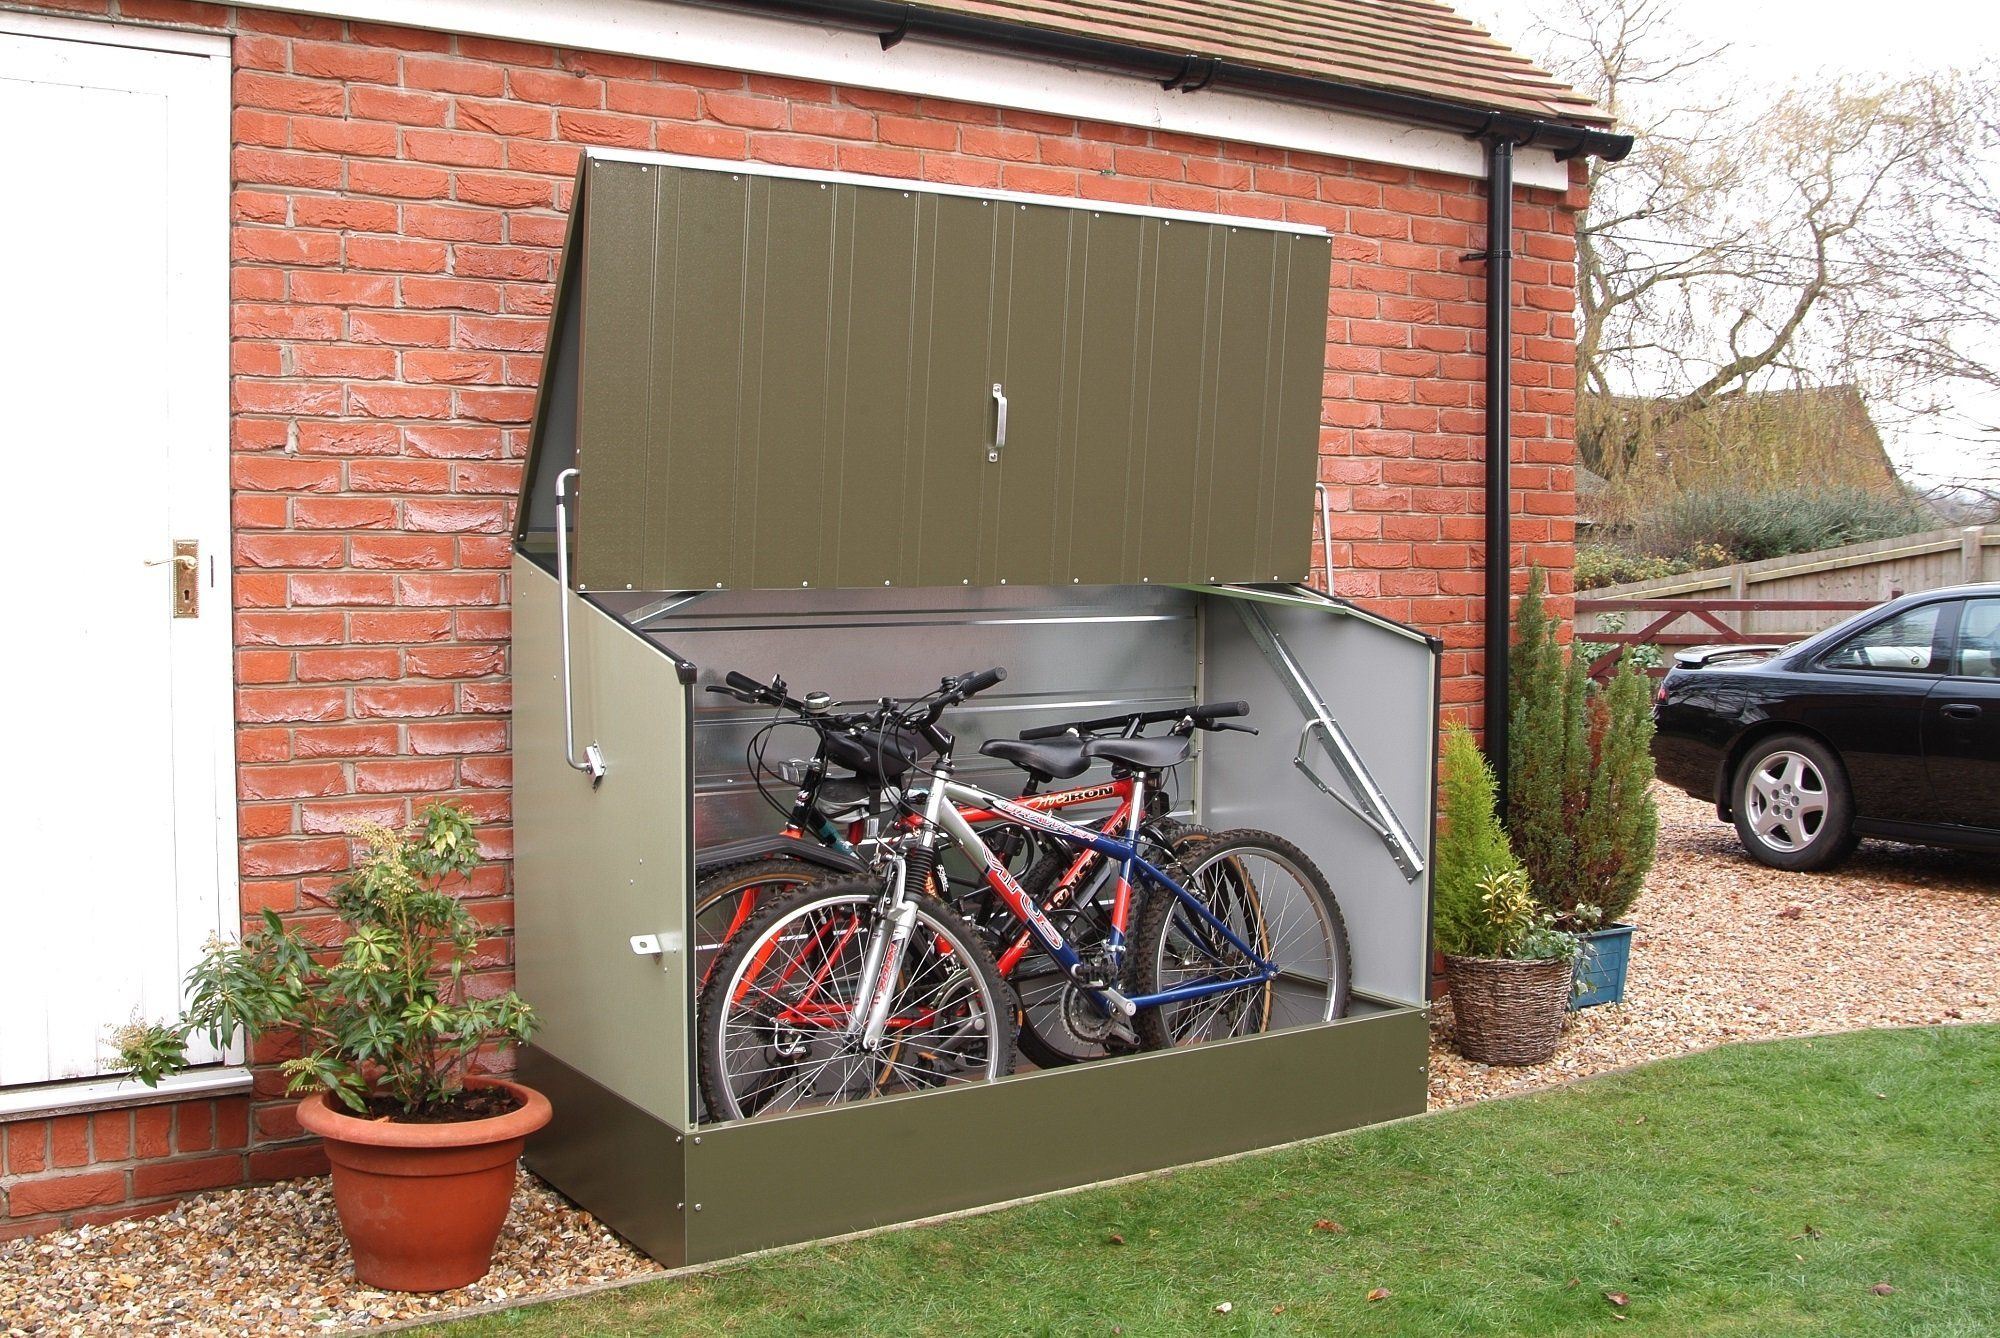 Best Outdoor Bike Storage Shed 2019 Ideal Solution For A Small